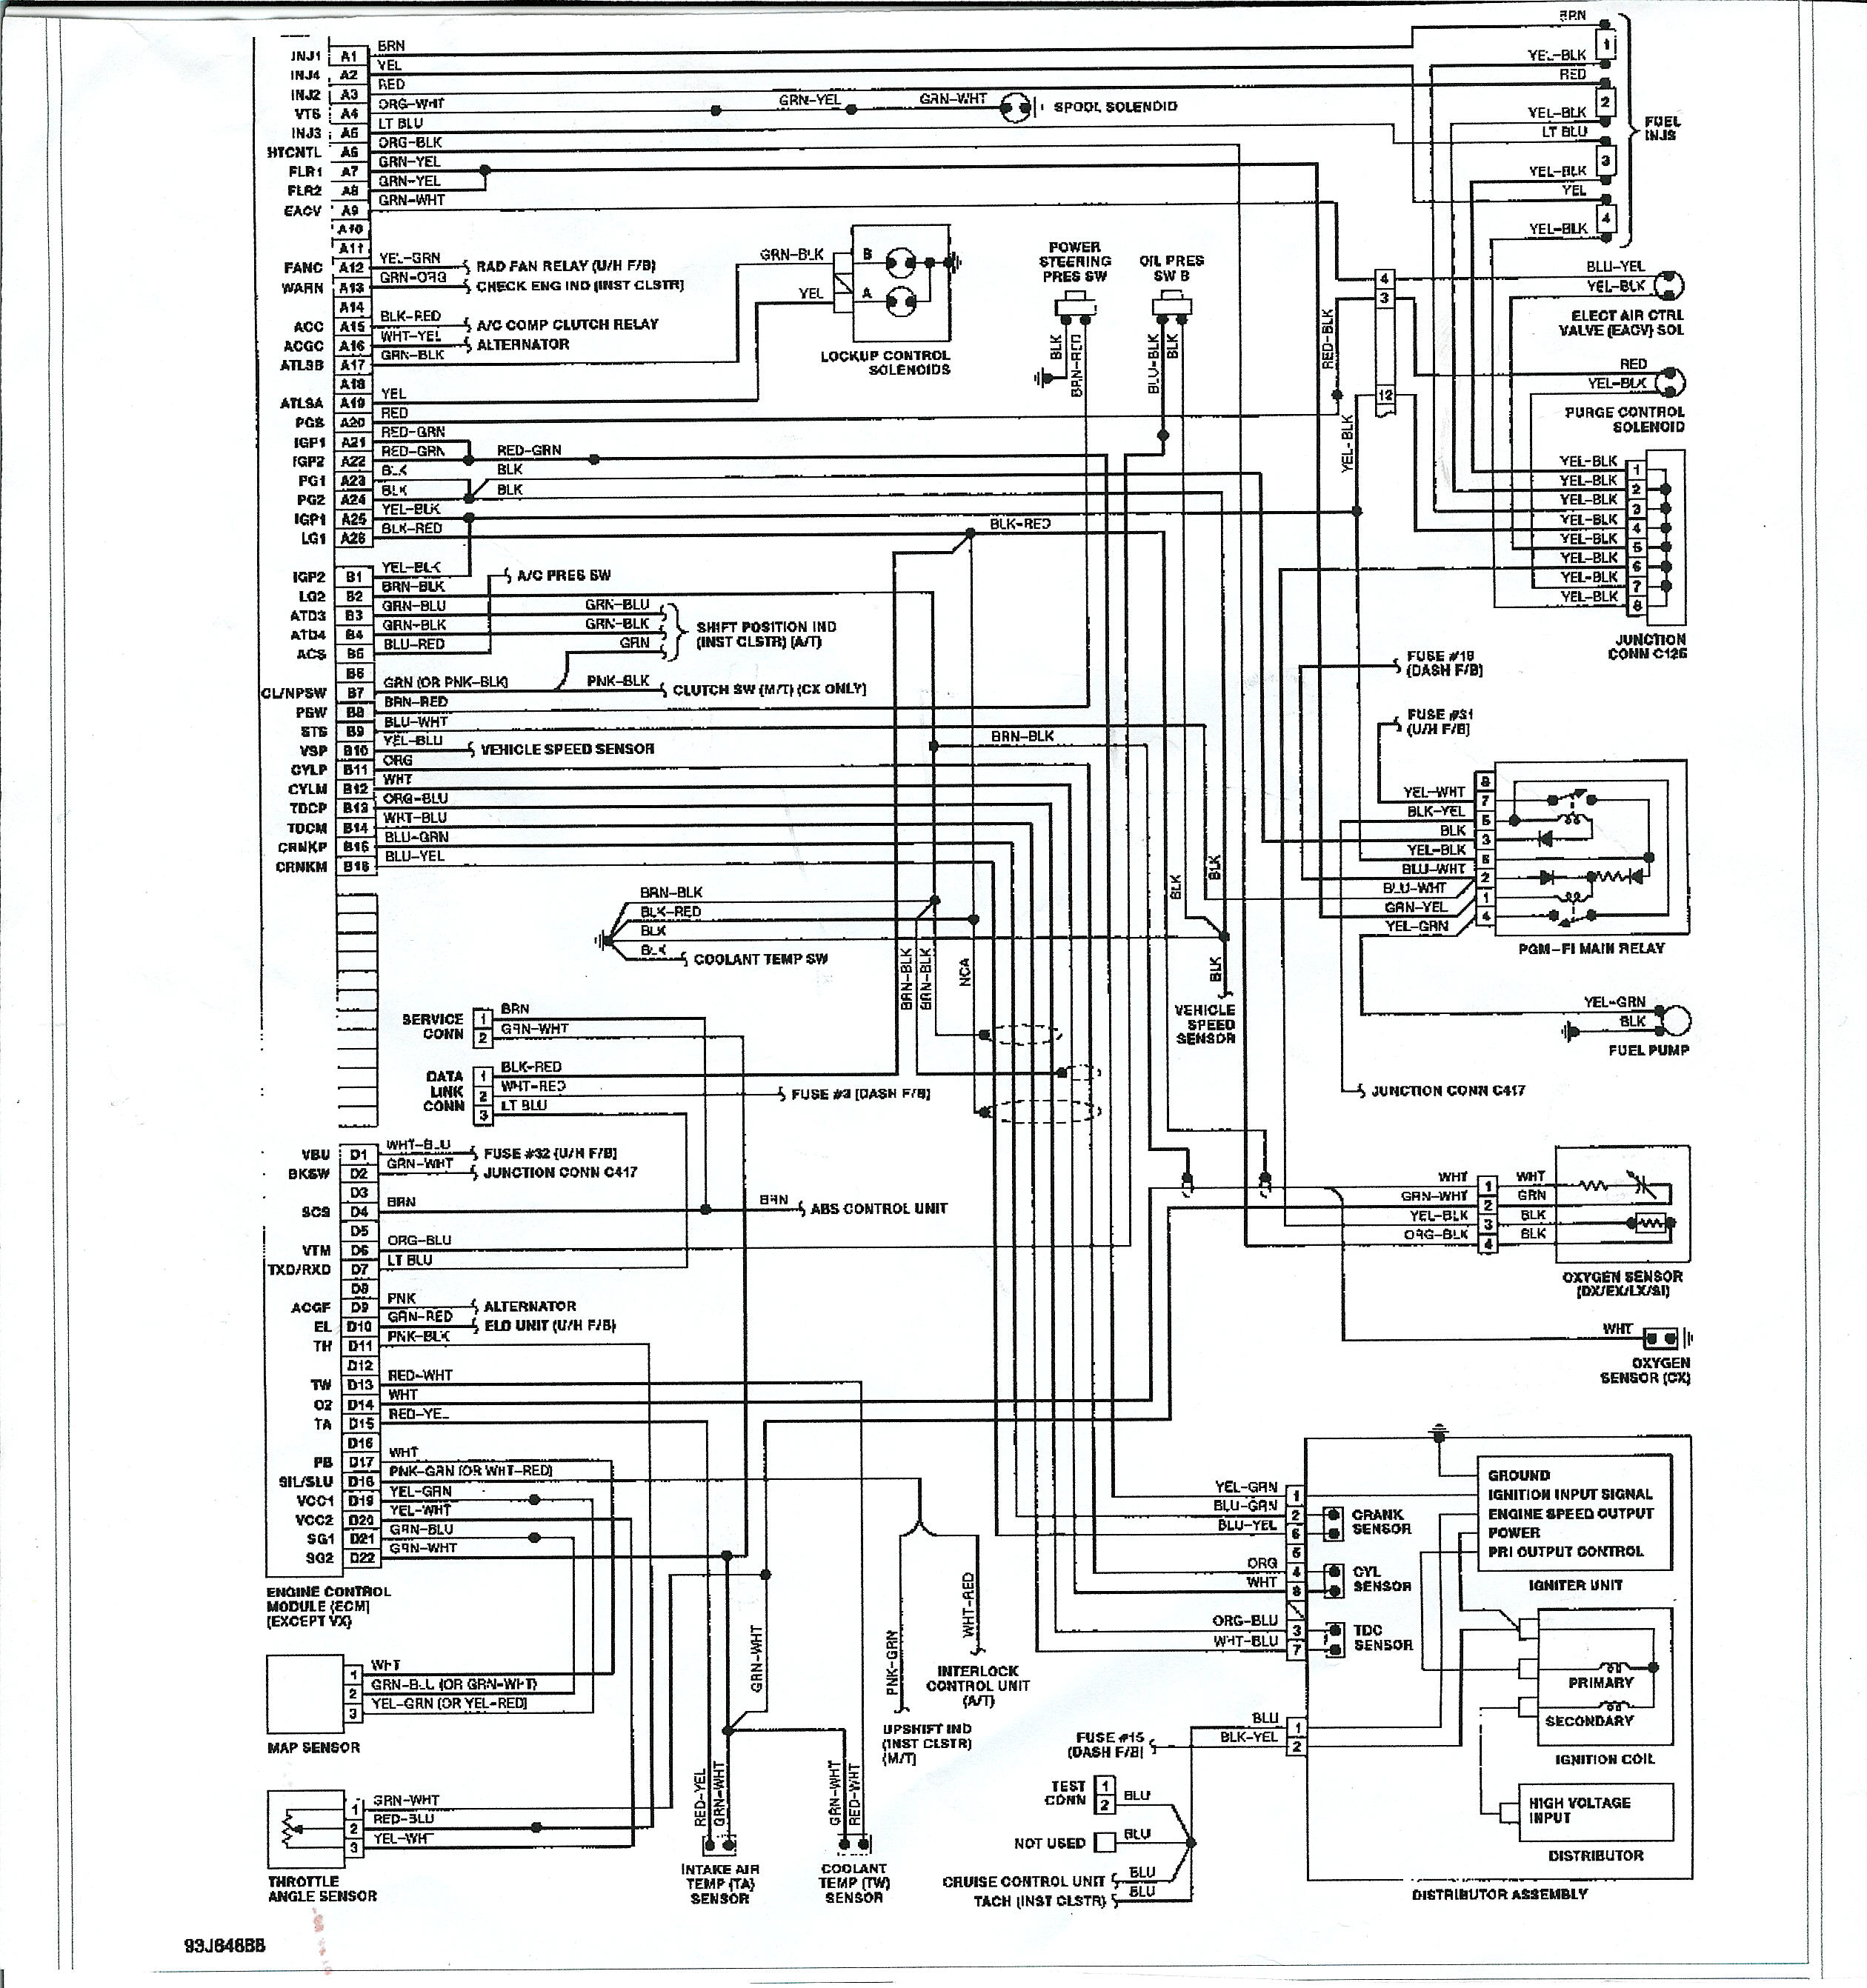 Wiring diagram vario 150 wiring diagram vario 125 new refrence wiring diagram vario 150 wiring diagram vario 125 new refrence wiring diagram xbox 360 power supplysc1stjoescablecar asfbconference2016 Images